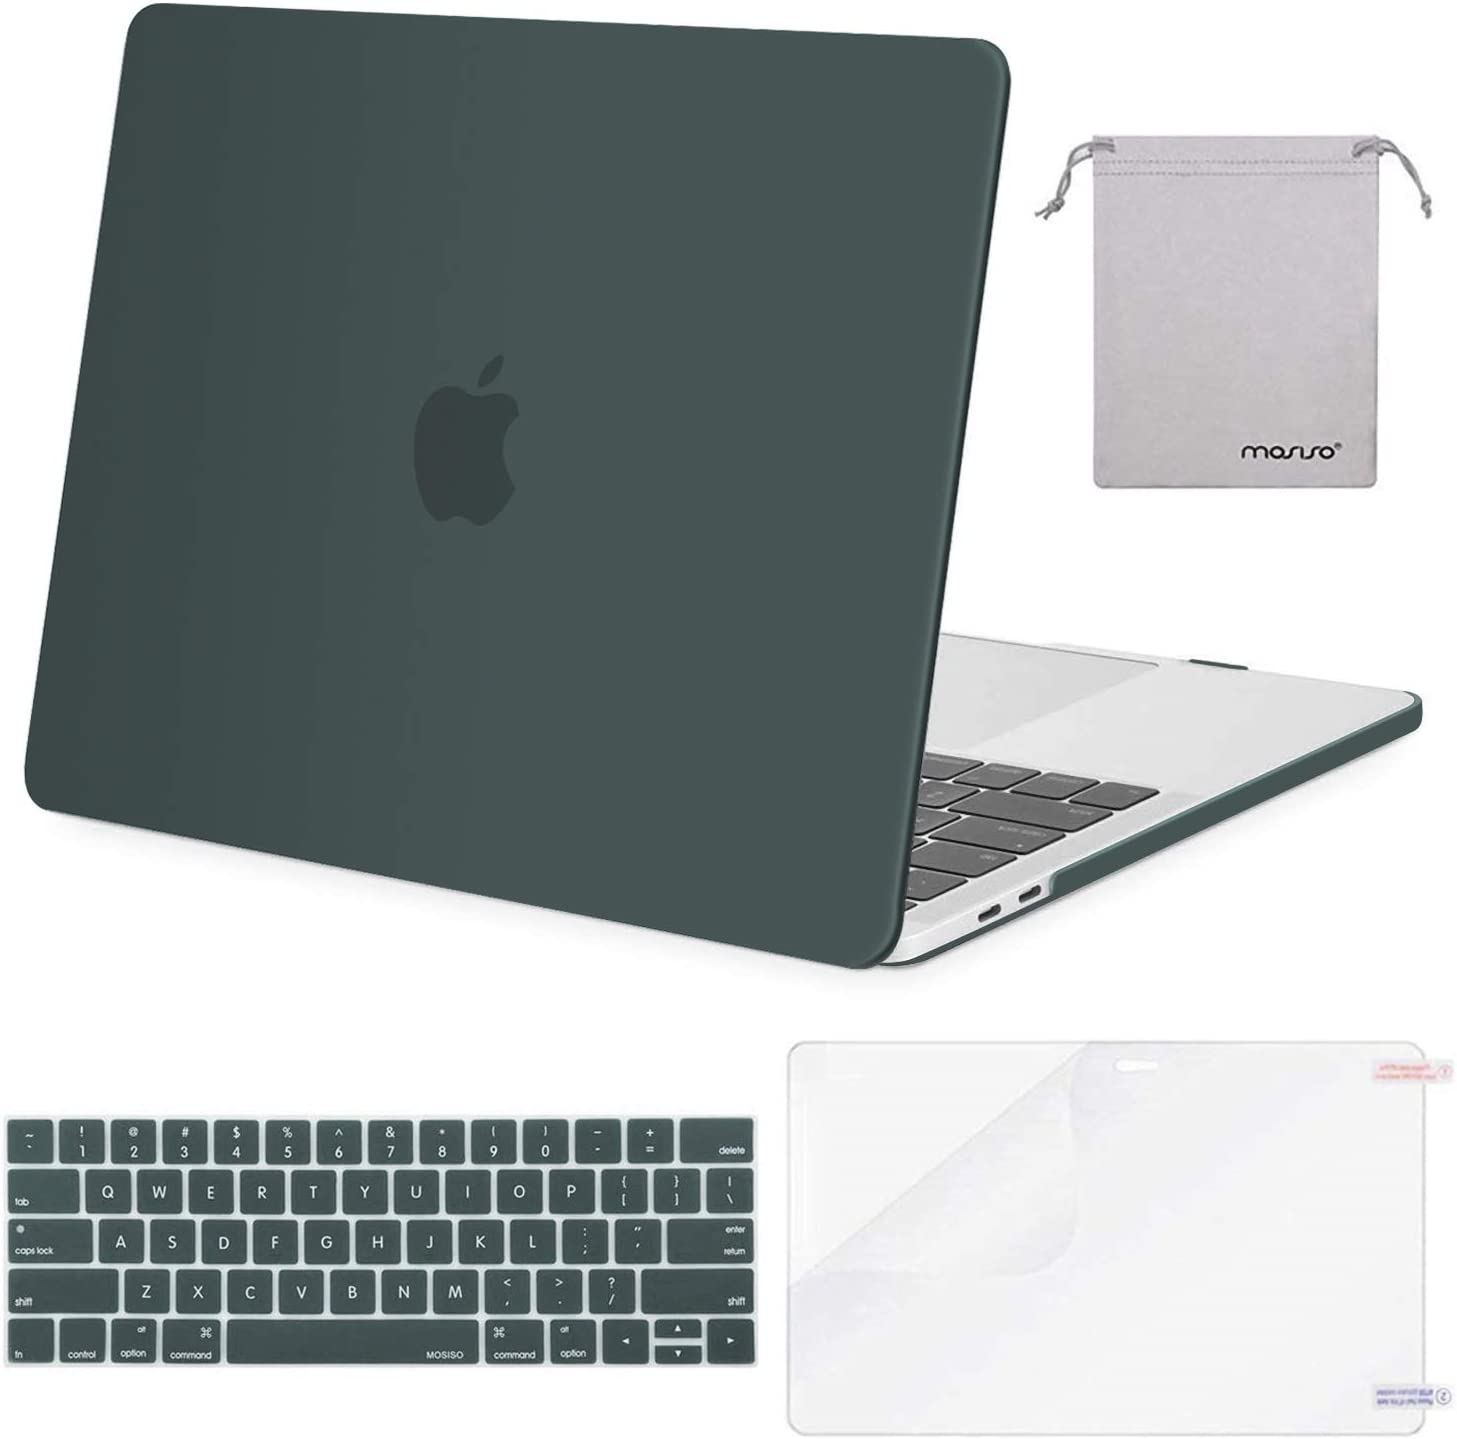 MOSISO MacBook Pro 13 inch Case 2019 2018 2017 2016 Release A2159 A1989 A1706 A1708, Plastic Hard Shell Case&Keyboard Cover&Screen Protector&Storage Bag Compatible with MacBook Pro 13, Midnight Green